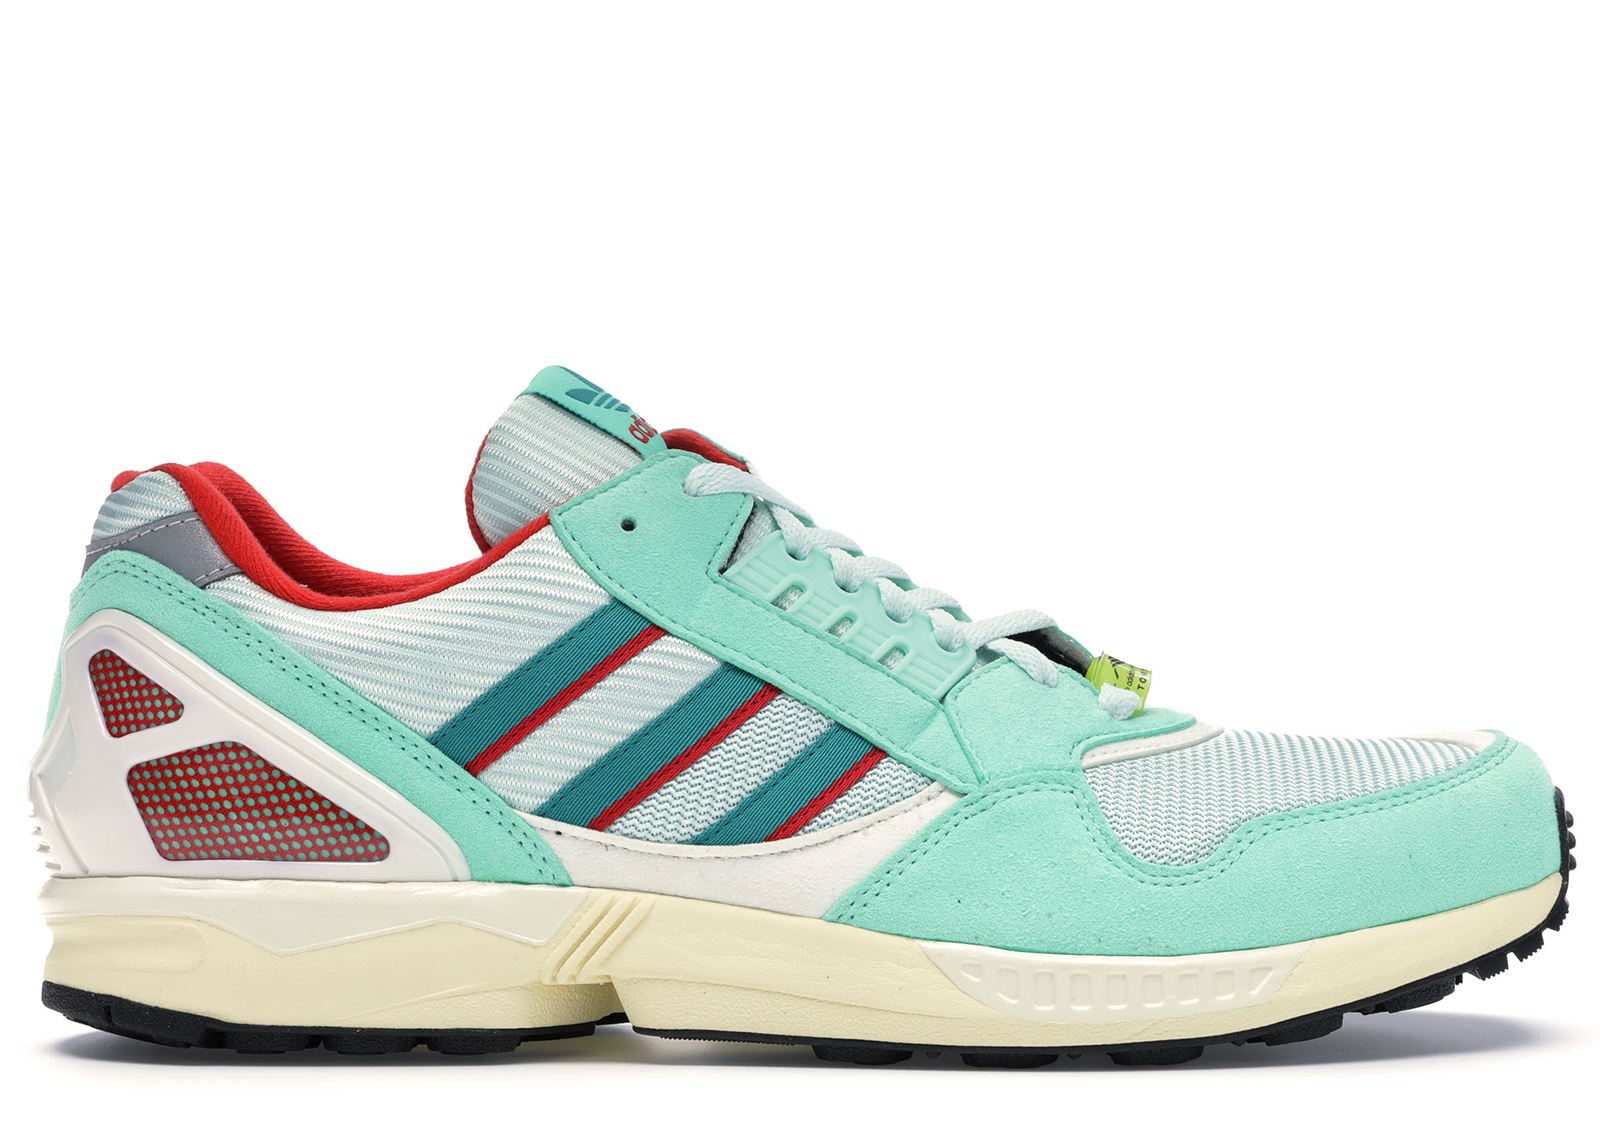 adidas ZX 9000 30 Years of Torsion - FU8403